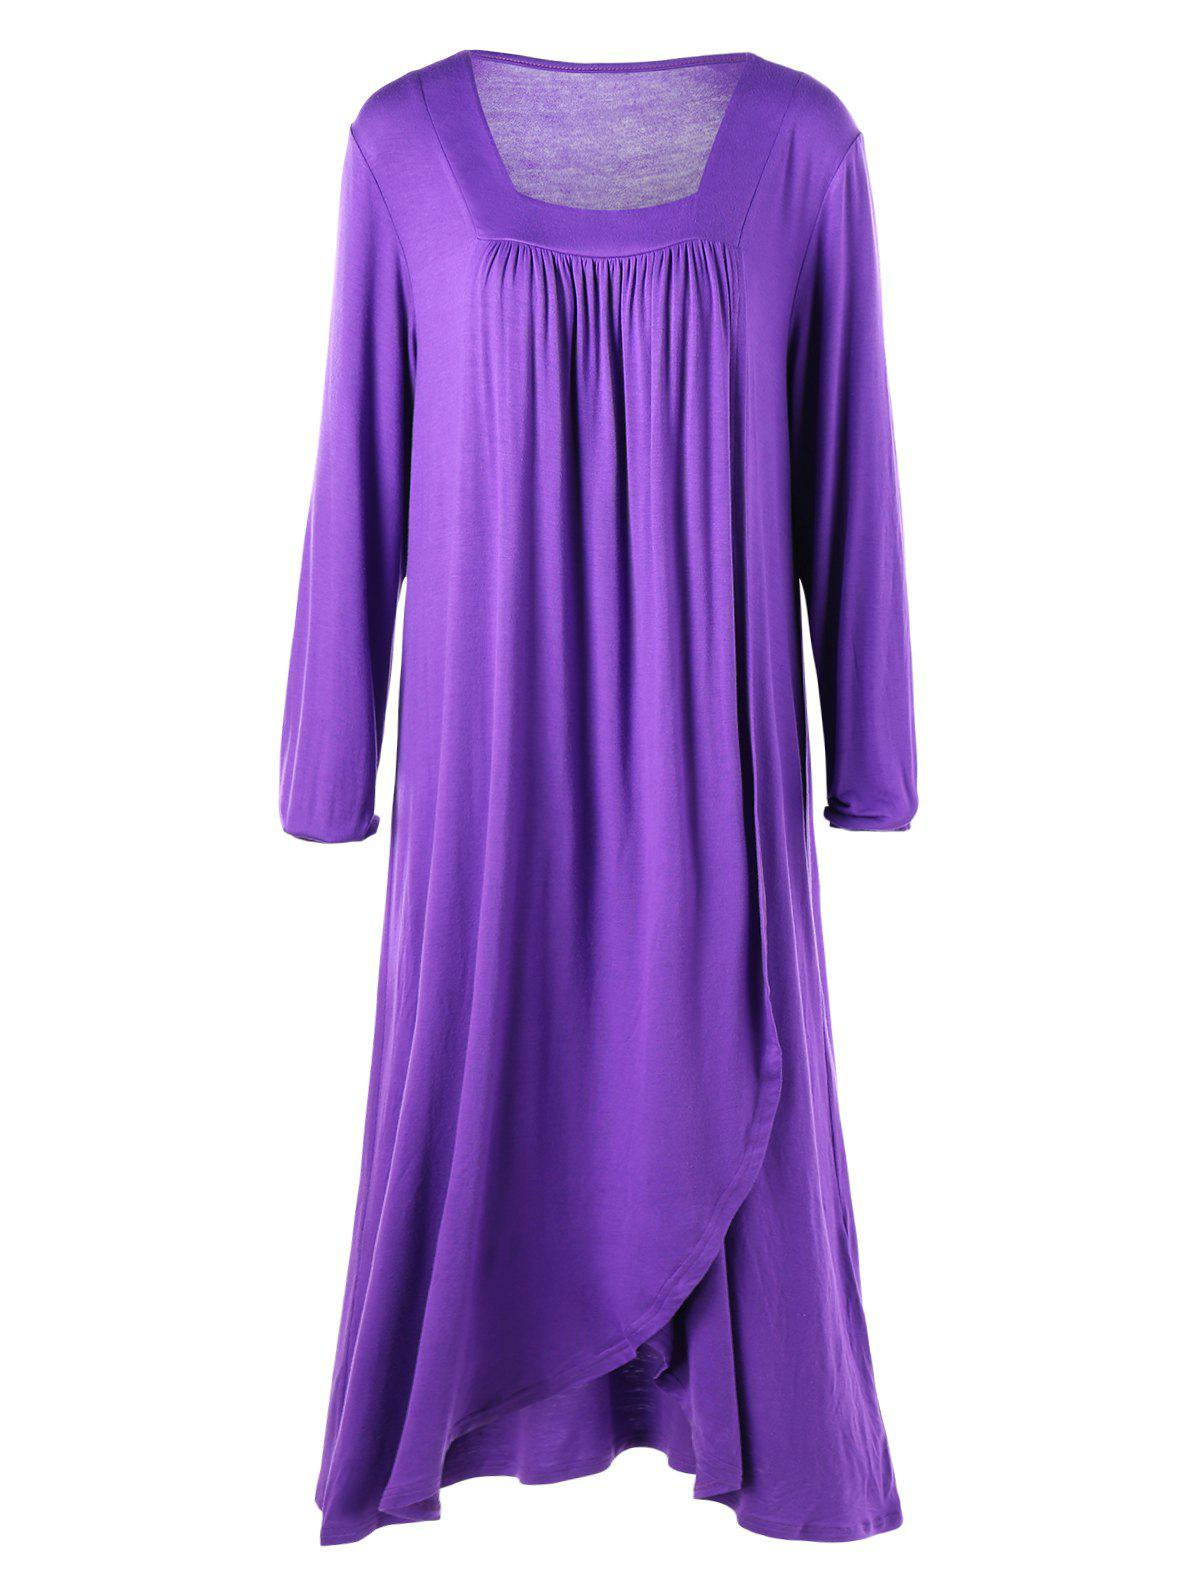 purple 2xl plus size midi surplice t shirt dress